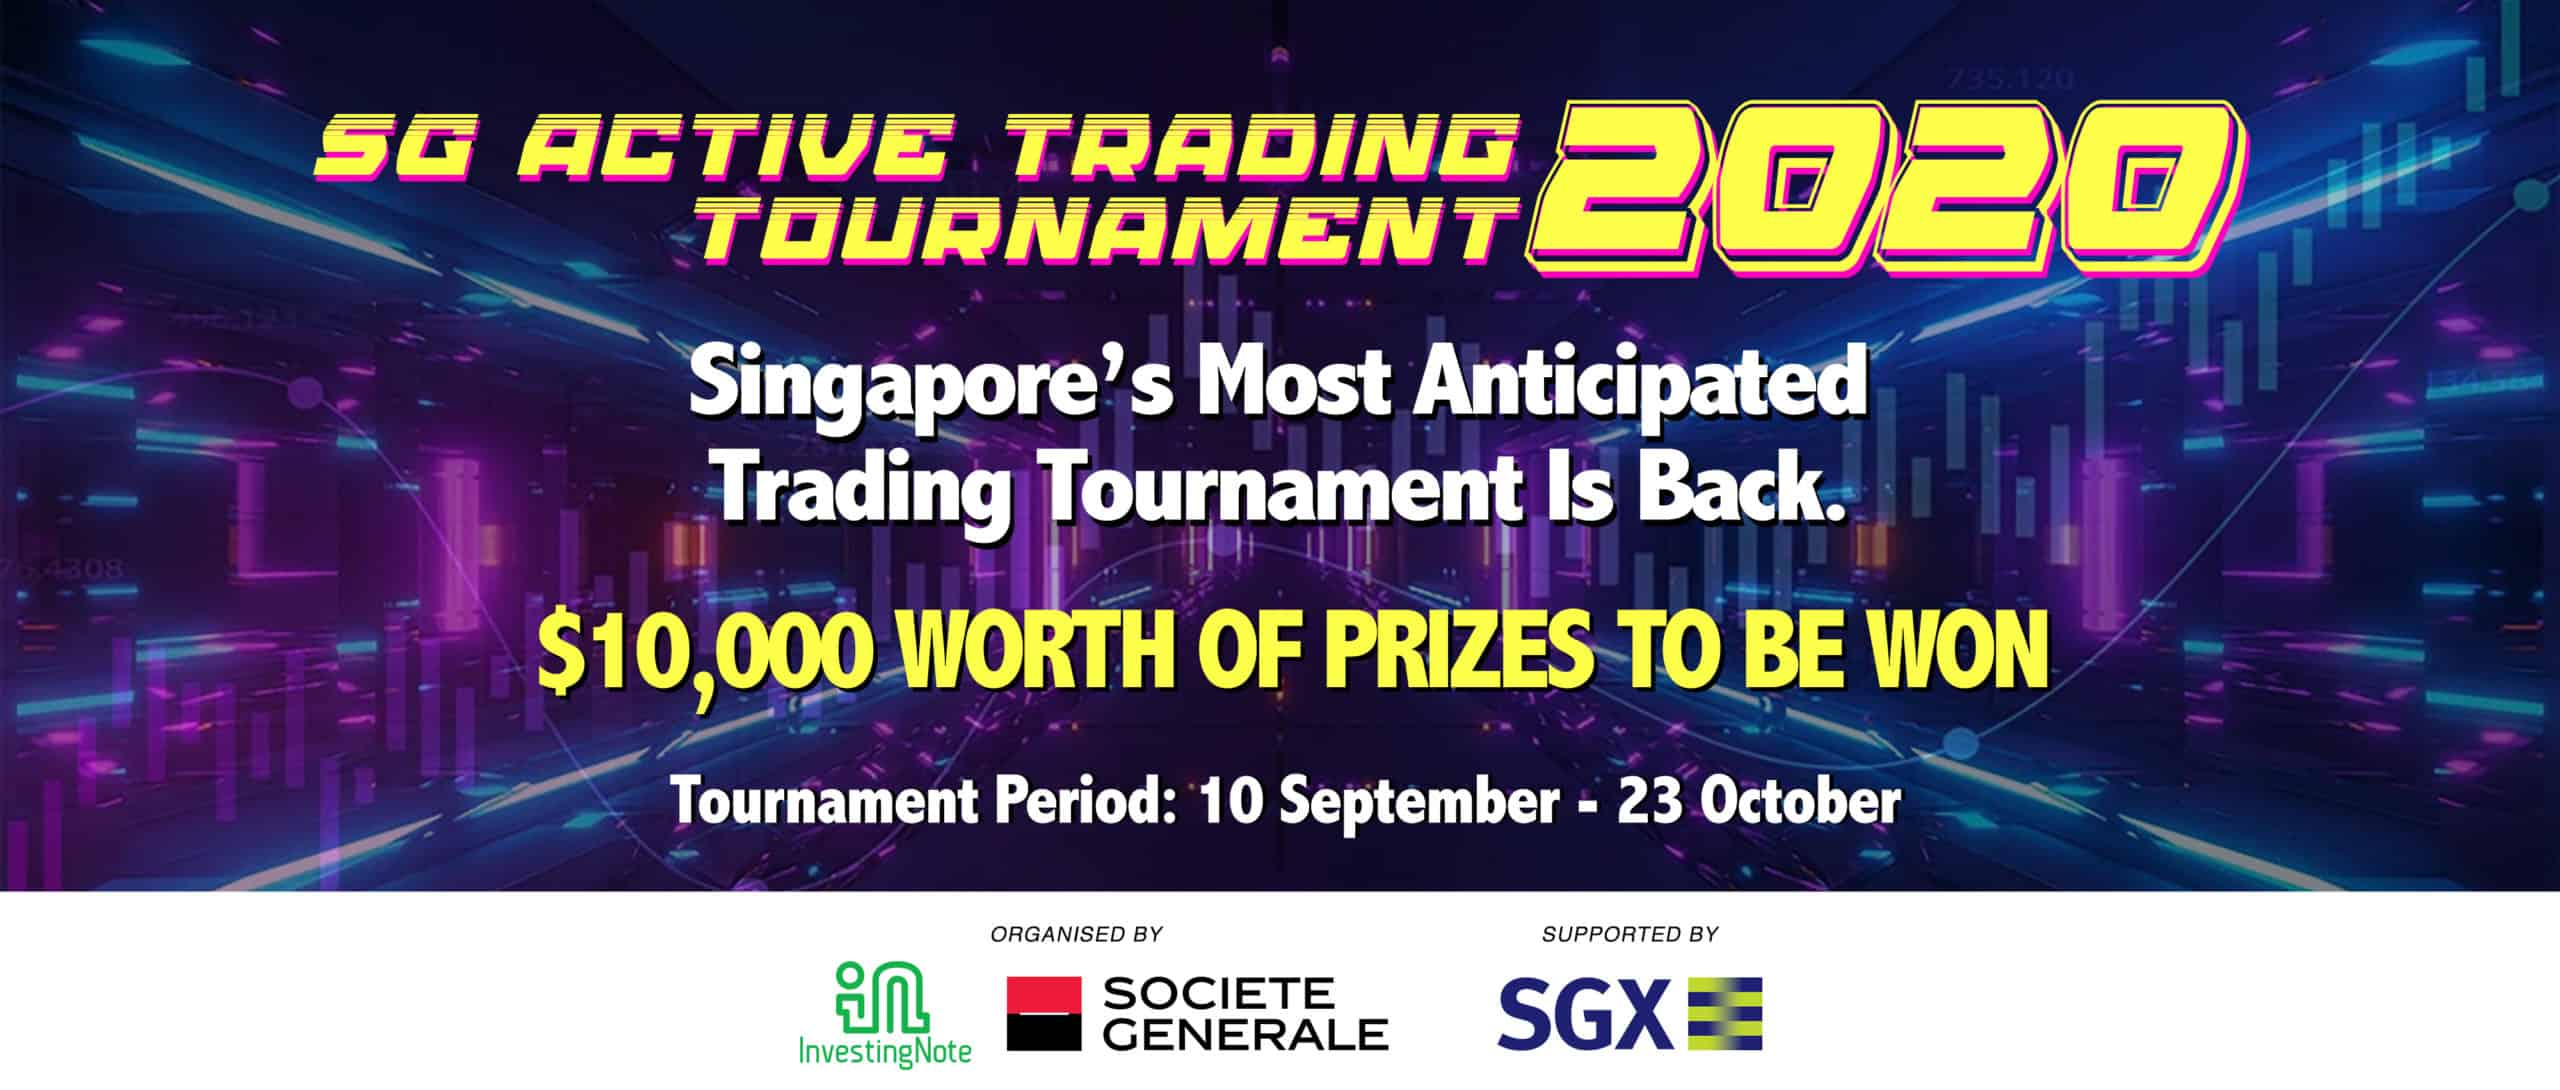 How to Start Trading In The SG Active Trading Tournament 2020 [Tutorial]